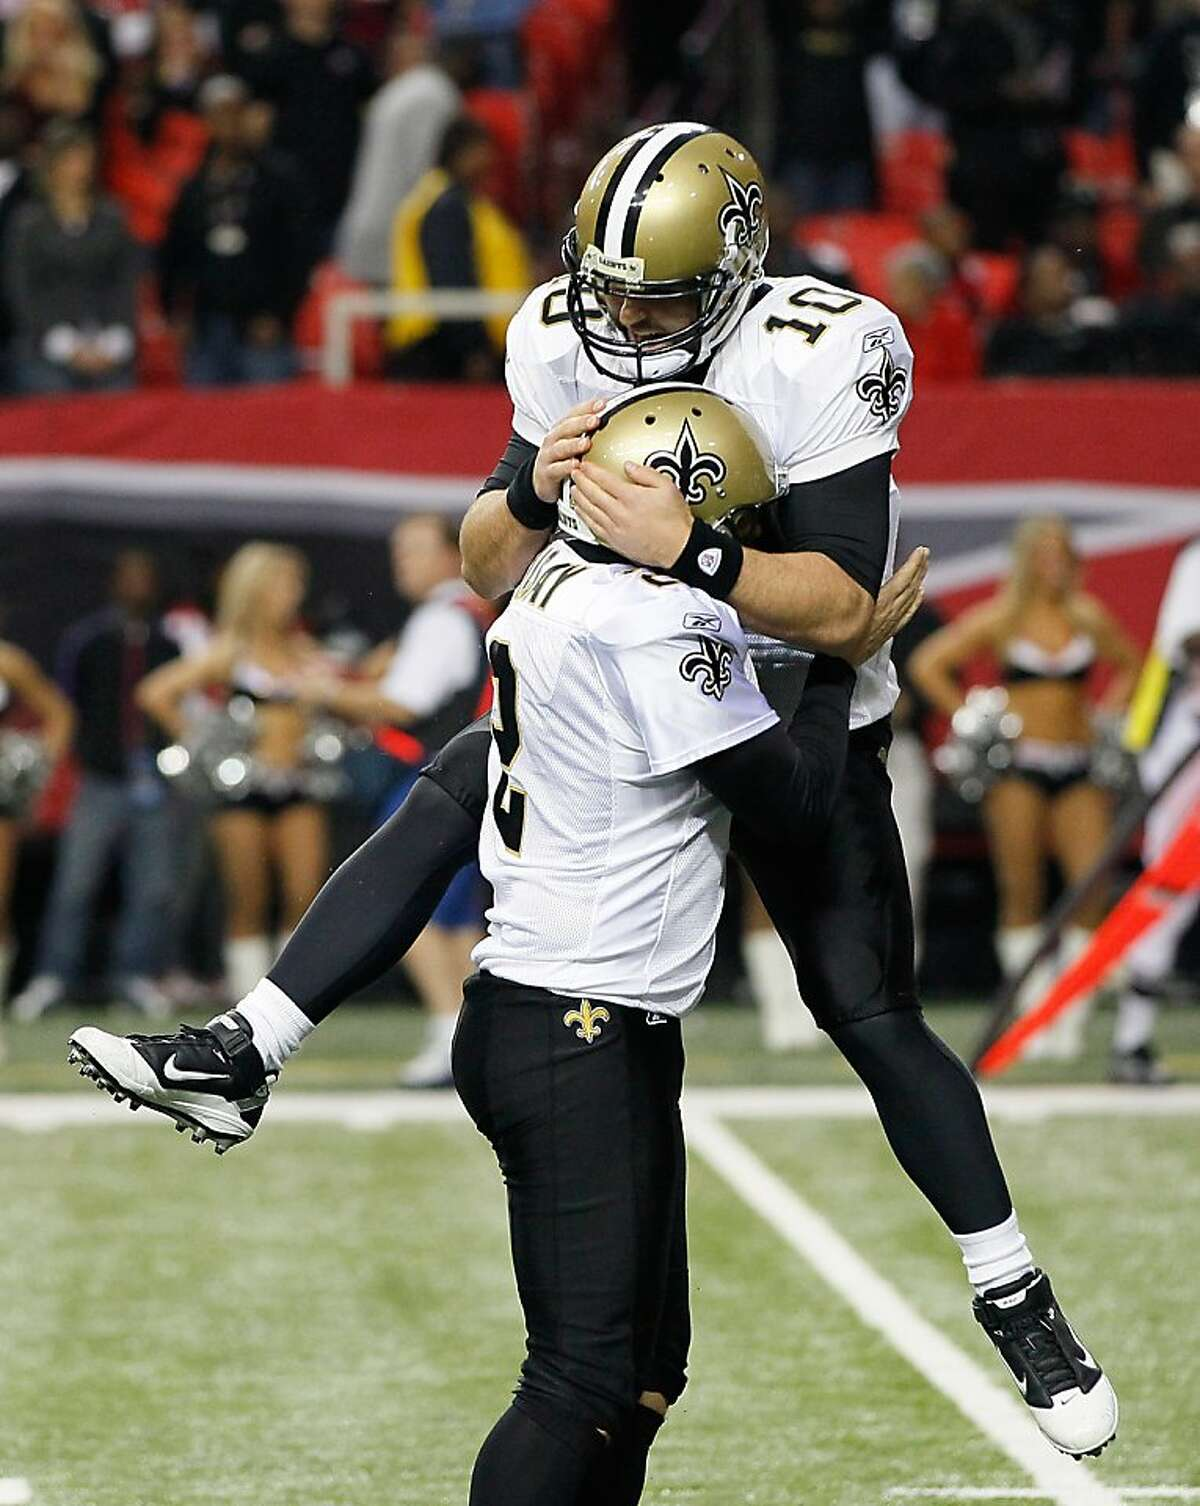 ATLANTA, GA - NOVEMBER 13: Chase Daniel #10 of the New Orleans Saints reacts after John Kasay #2 kicked the game-winning field goal in overtime against the Atlanta Falcons at Georgia Dome on November 13, 2011 in Atlanta, Georgia. (Photo by Kevin C. Cox/Getty Images)